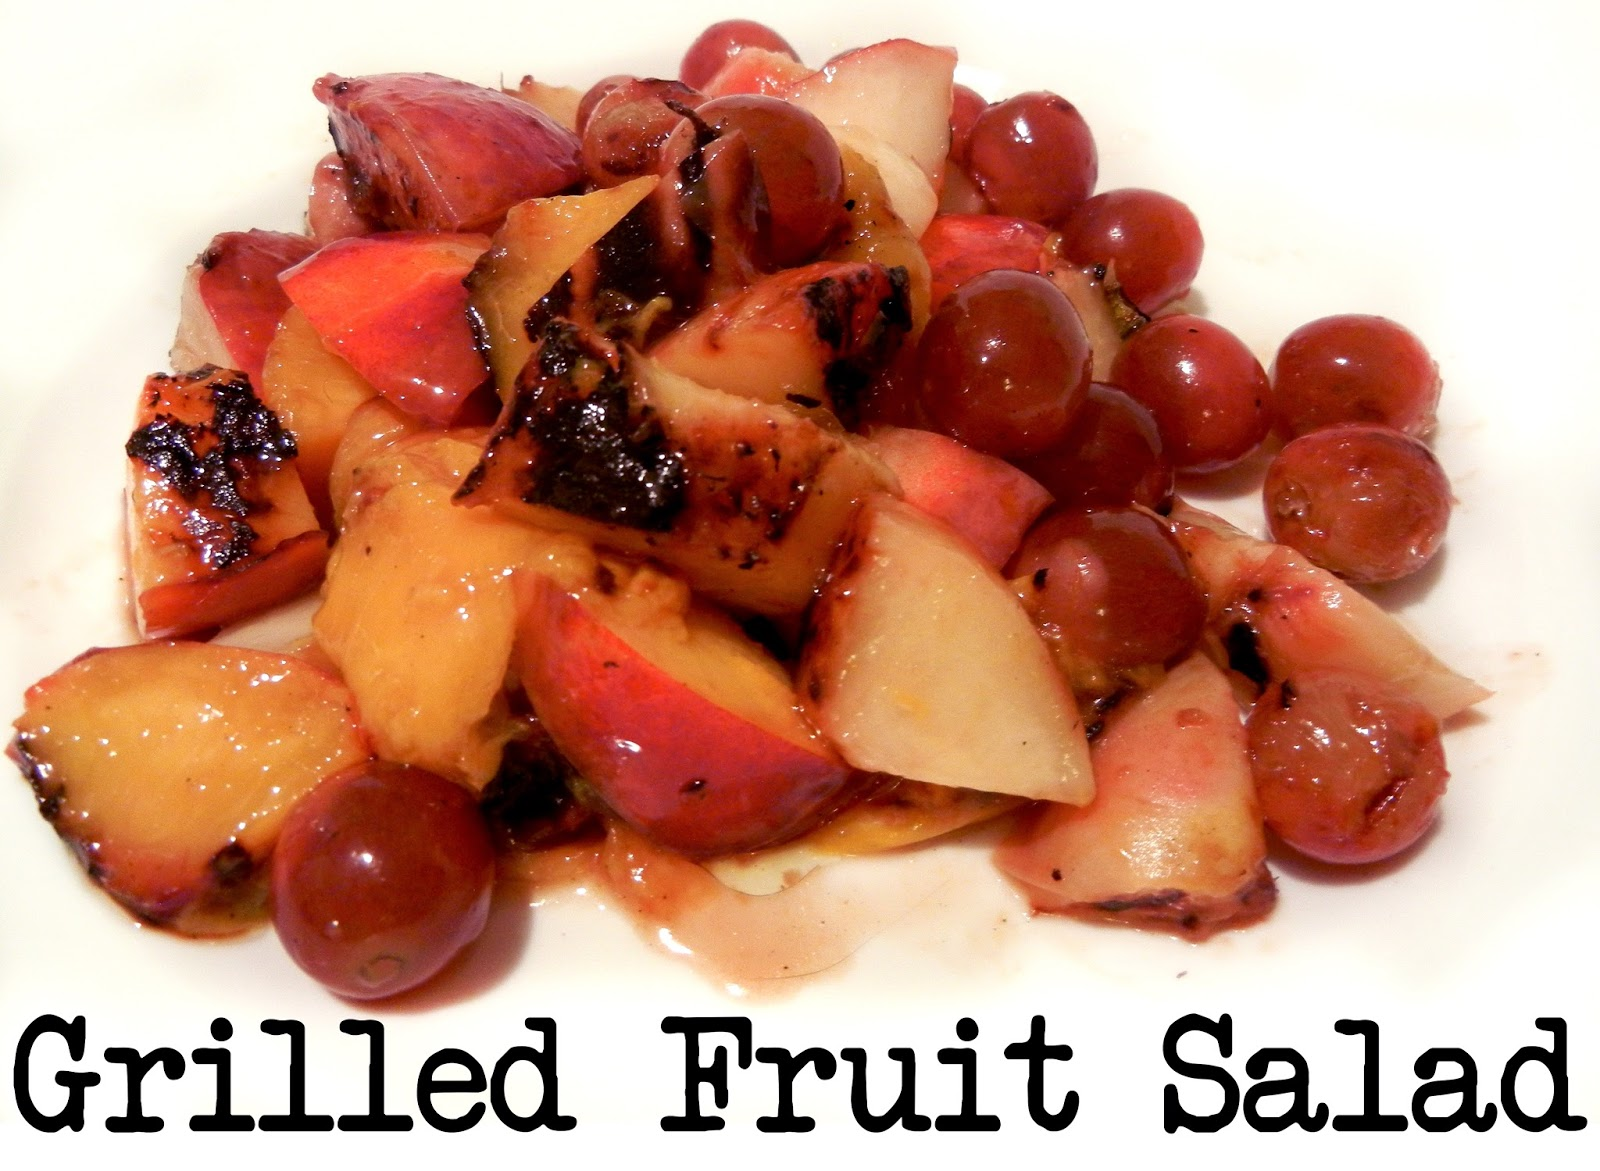 Derek's Kitchen: Grilled Fruit Salad